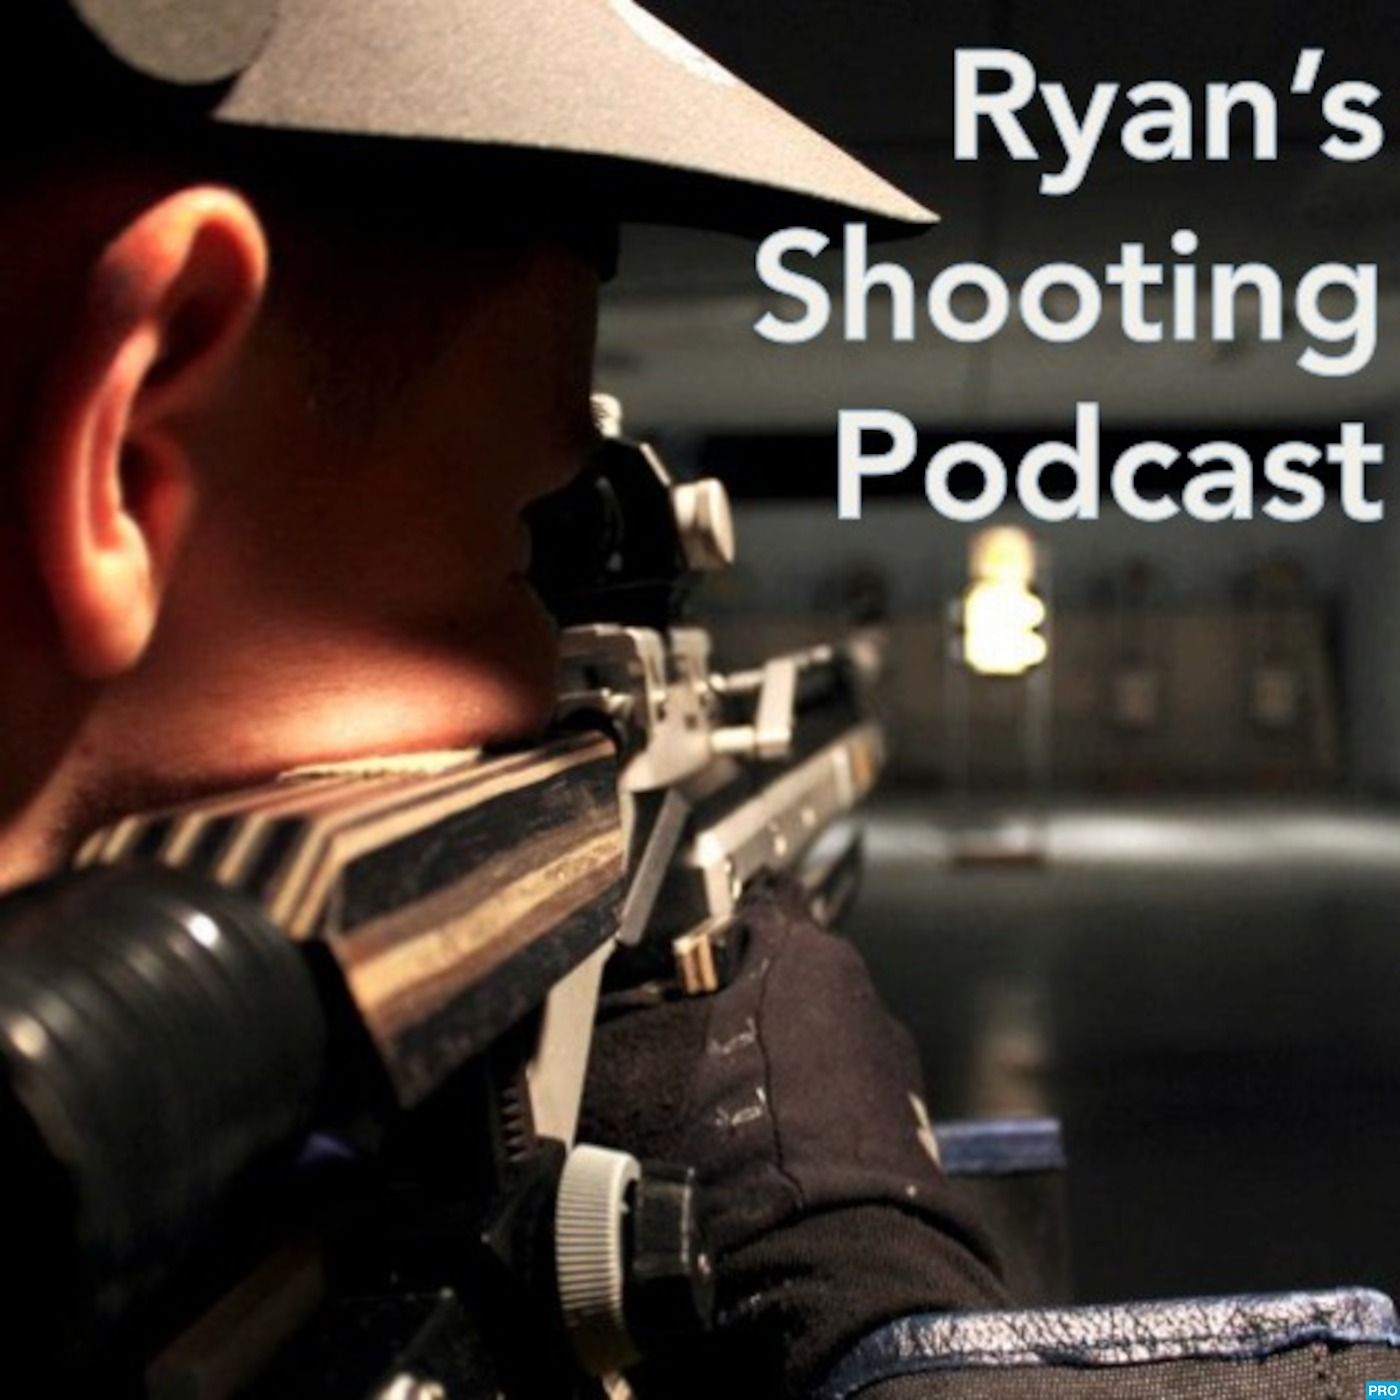 Ryan's Shooting Podcast